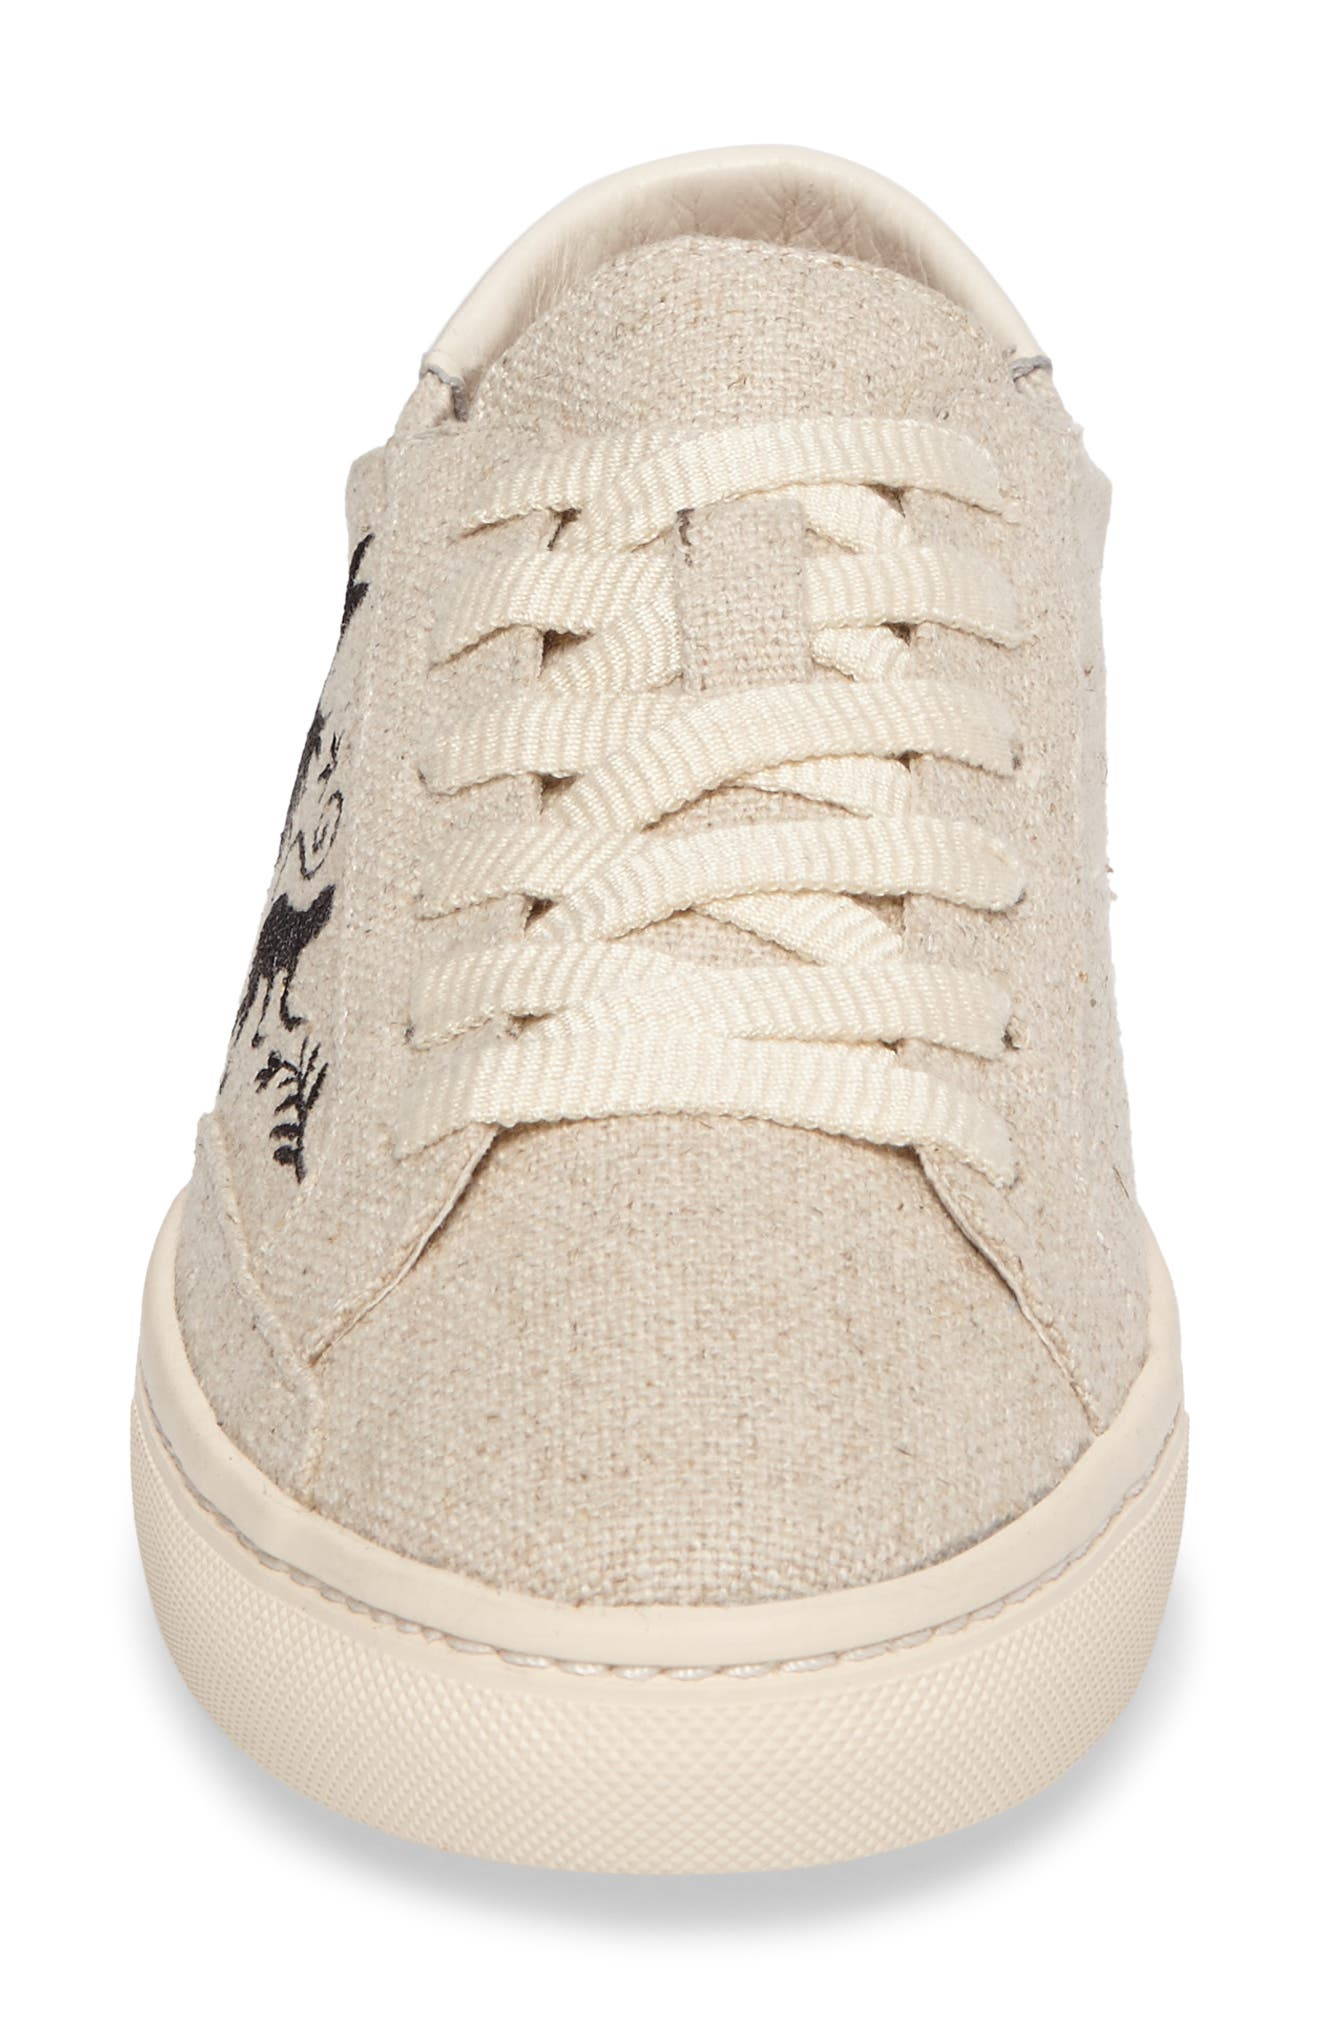 Otomi Sneaker,                             Alternate thumbnail 4, color,                             Sand Black